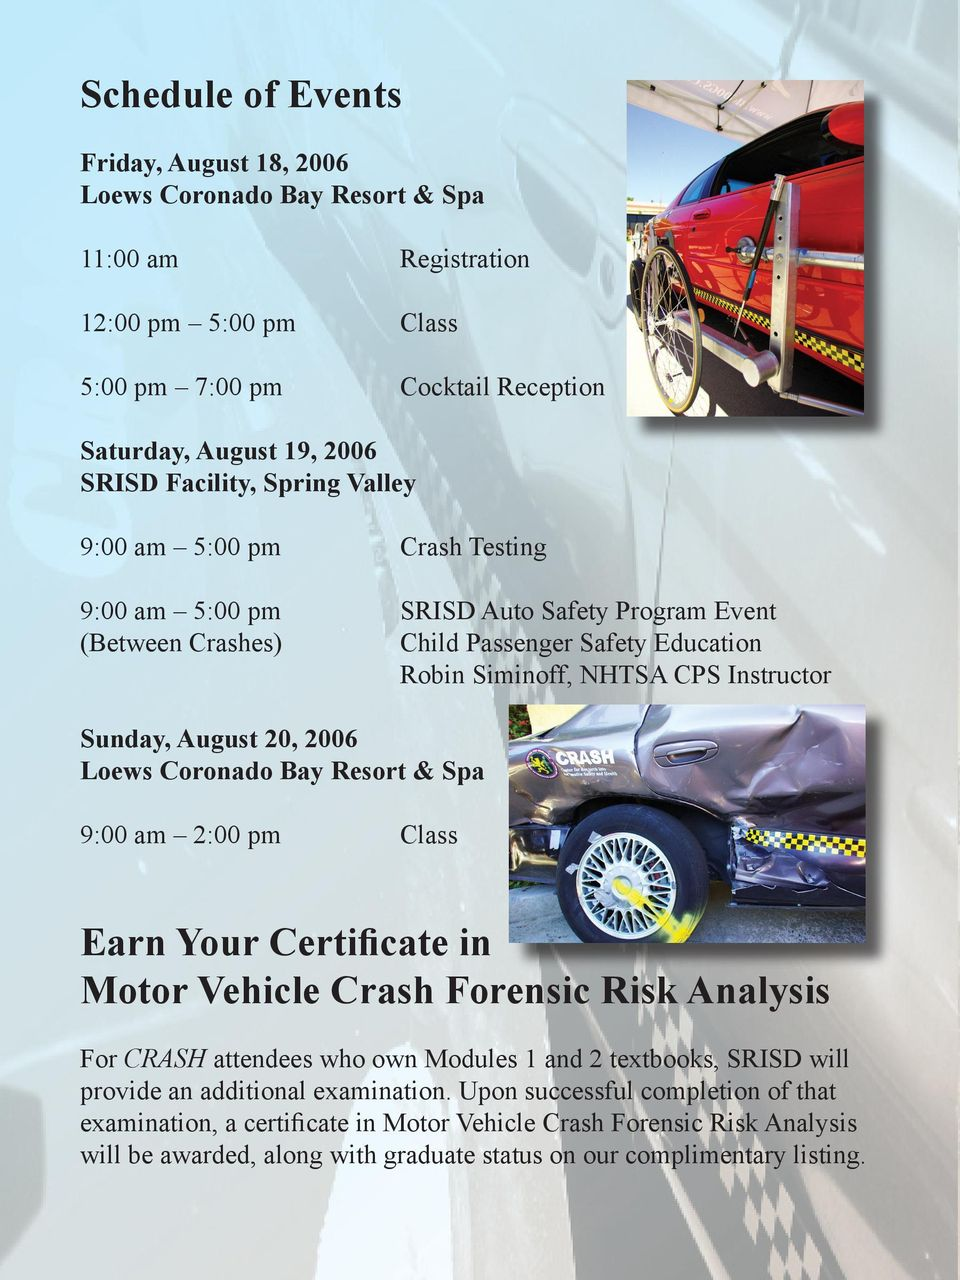 2006 Loews Coronado Bay Resort & Spa 9:00 am 2:00 pm Class Earn Your Certificate in Motor Vehicle Crash Forensic Risk Analysis For CRASH attendees who own Modules 1 and 2 textbooks, SRISD will